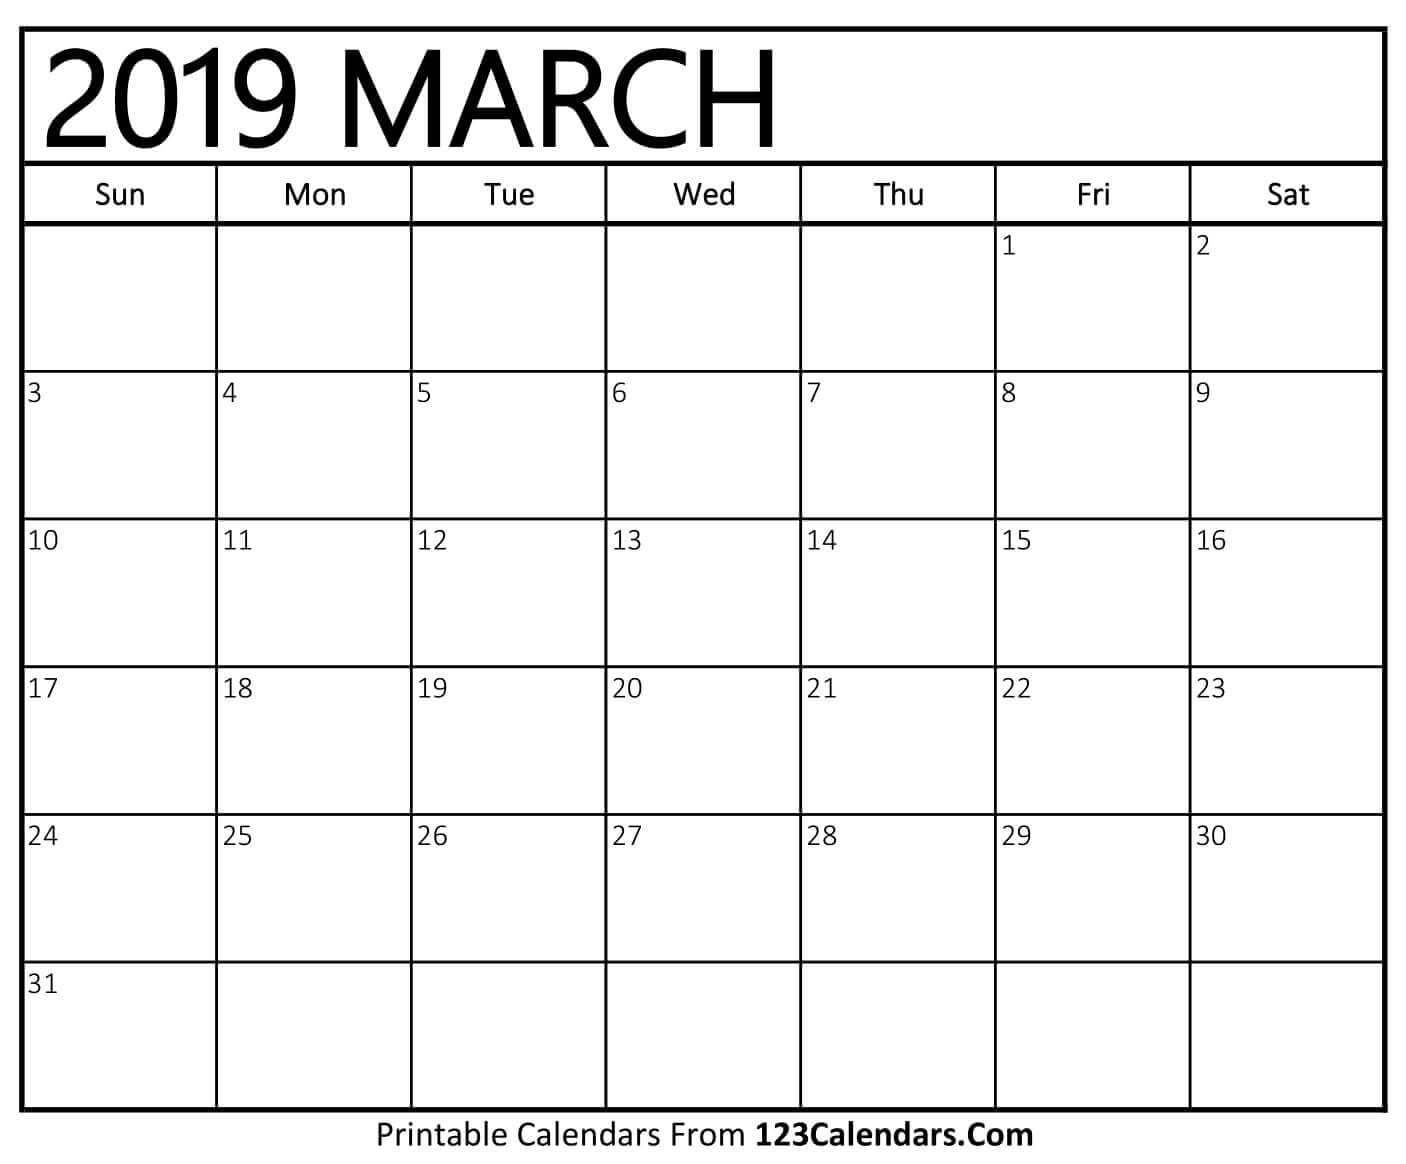 Printable March 2019 Calendar Templates - 123Calendars Calendar 2019 March